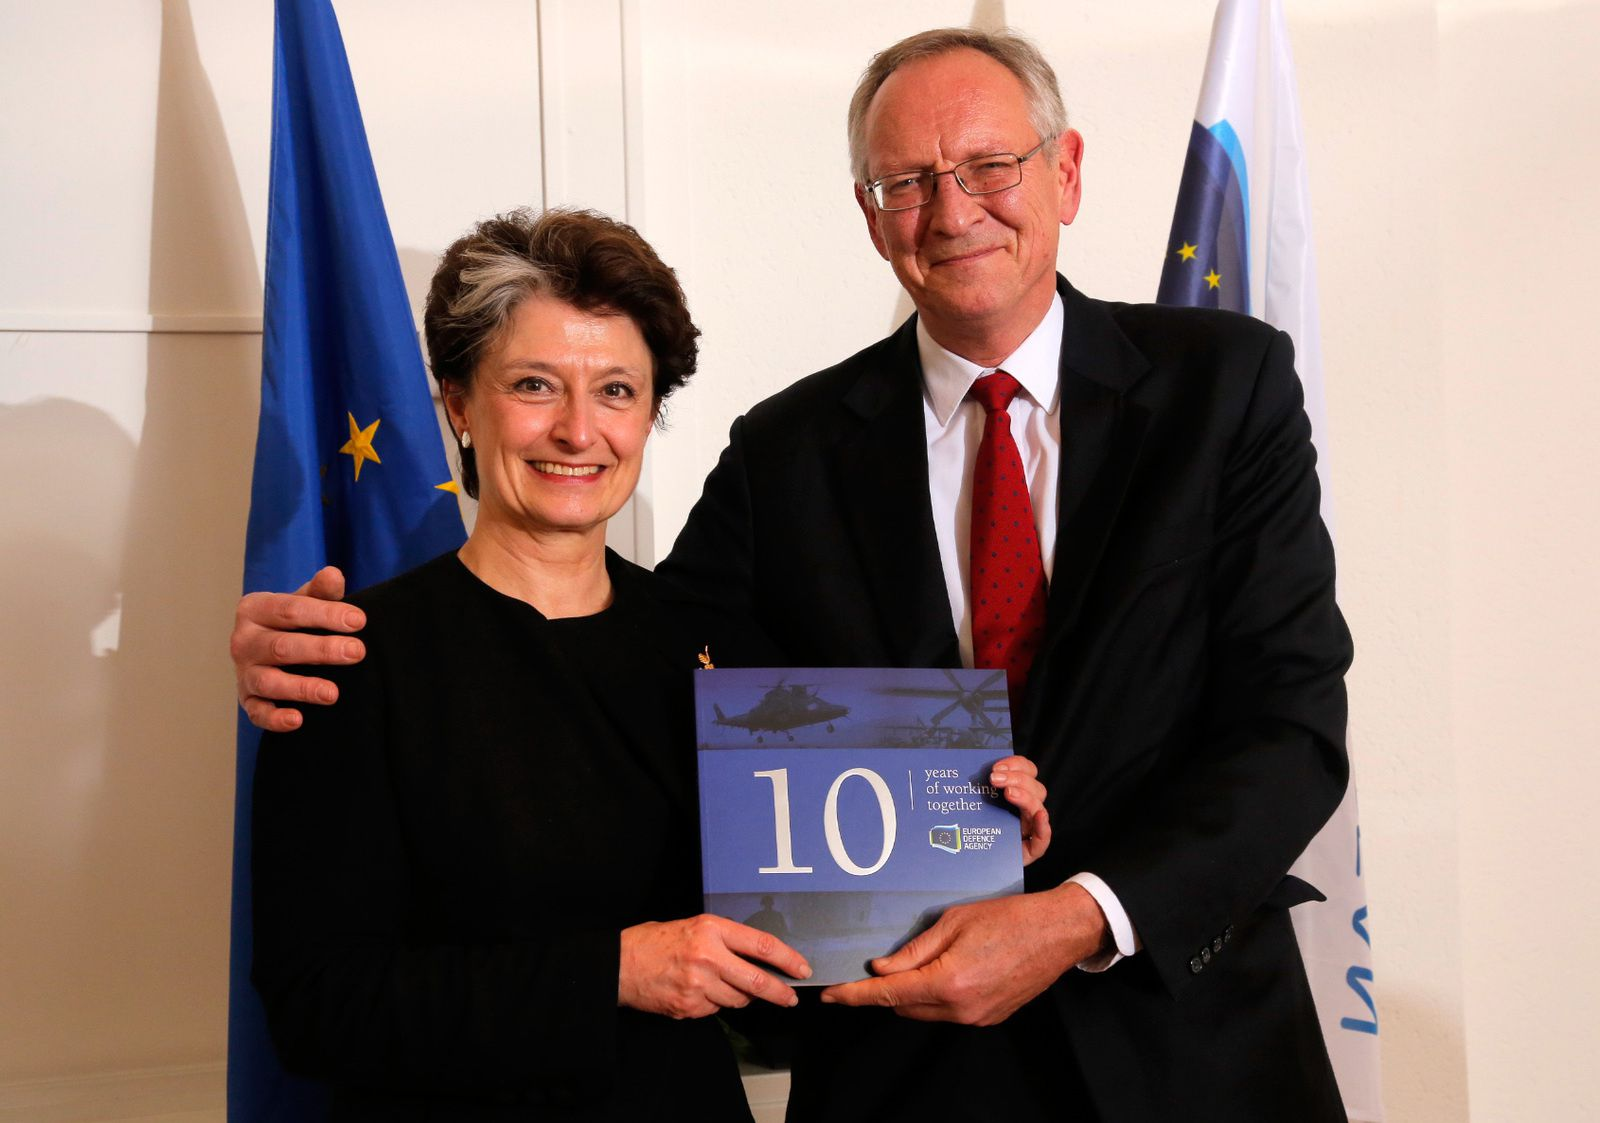 Claude-France Arnould, Chief Executive of the European Defence Agency, with former Chief Executive Nick Witney